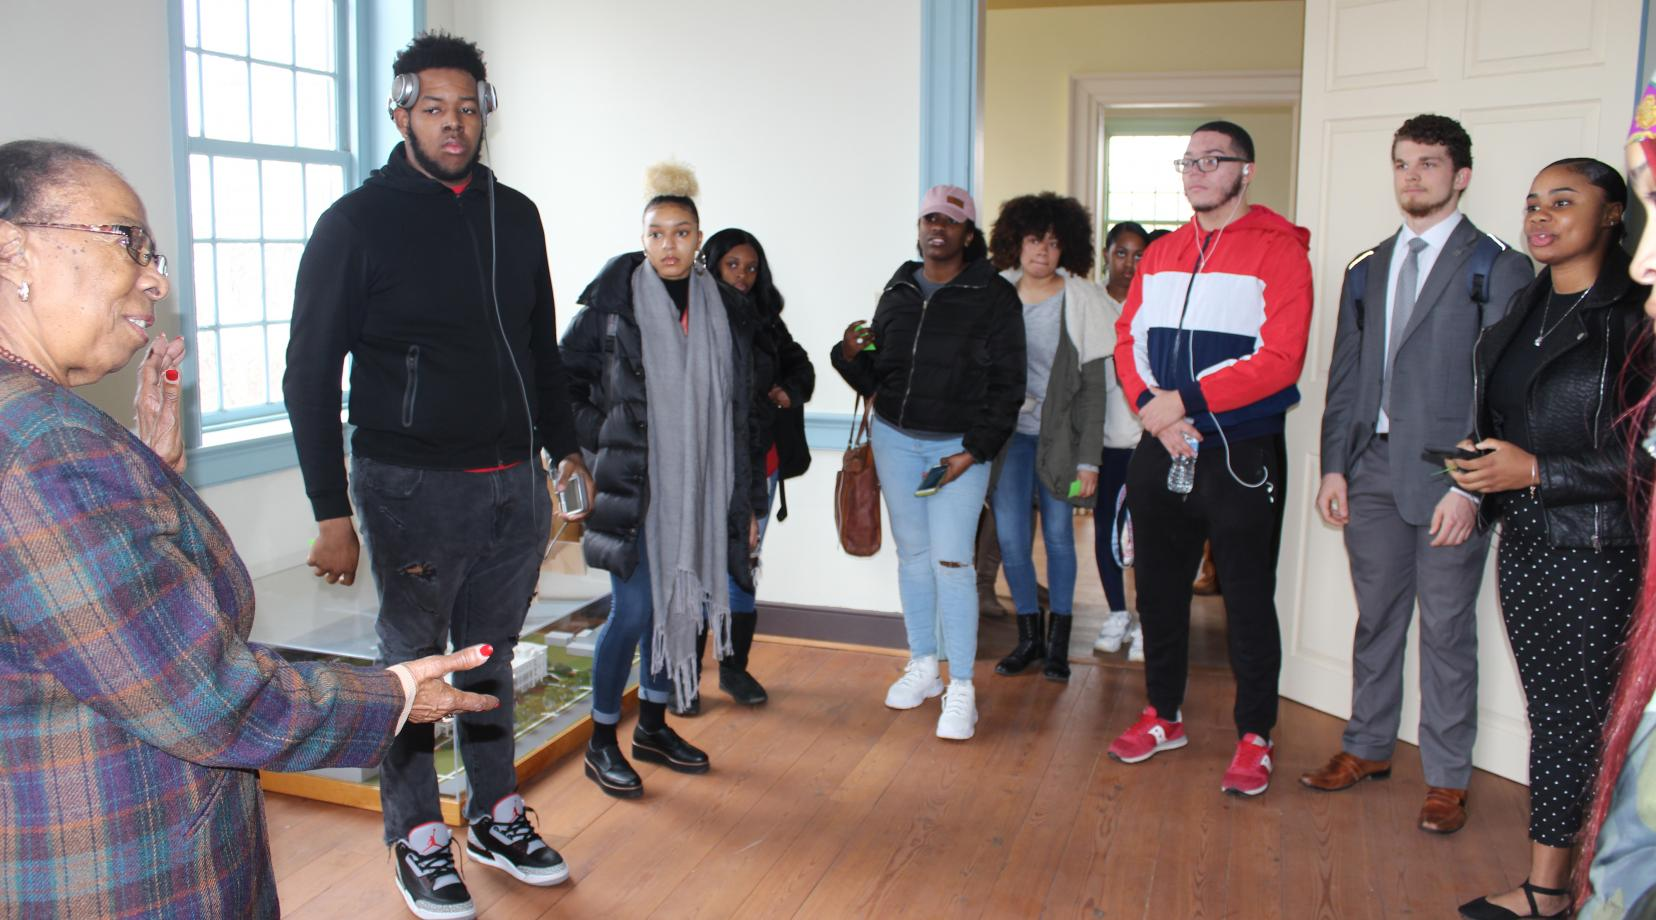 <p>Alumna Reba Hollingsworth, Class of 1949, tells students what life was like at Delaware State College in the 1940s.</p>